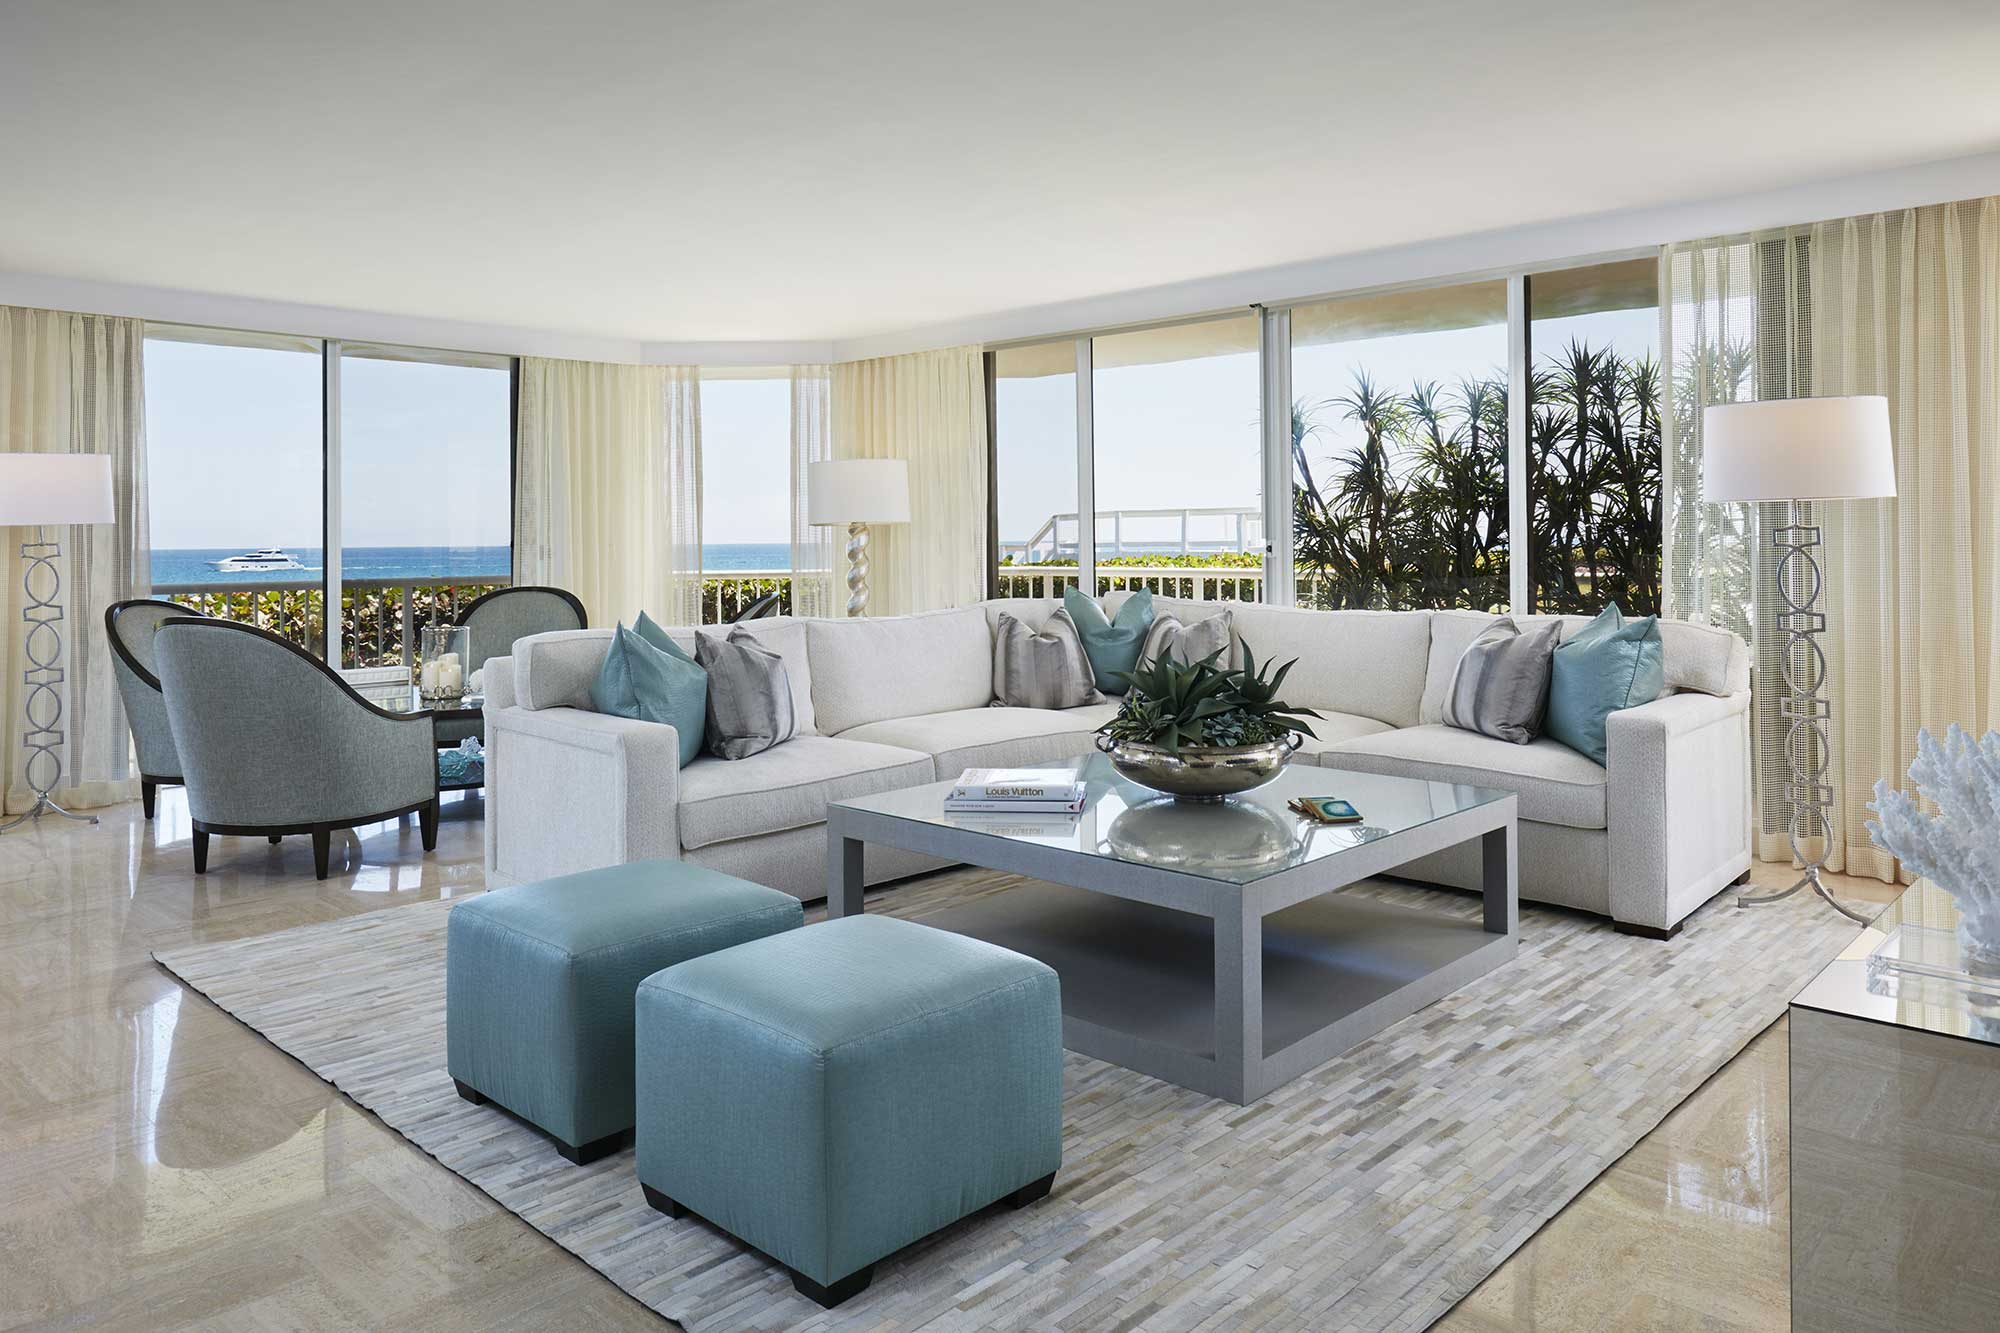 New Project Palm Beach Oceanfront Paradise Annie Santulli Designs Luxury Palm Beach